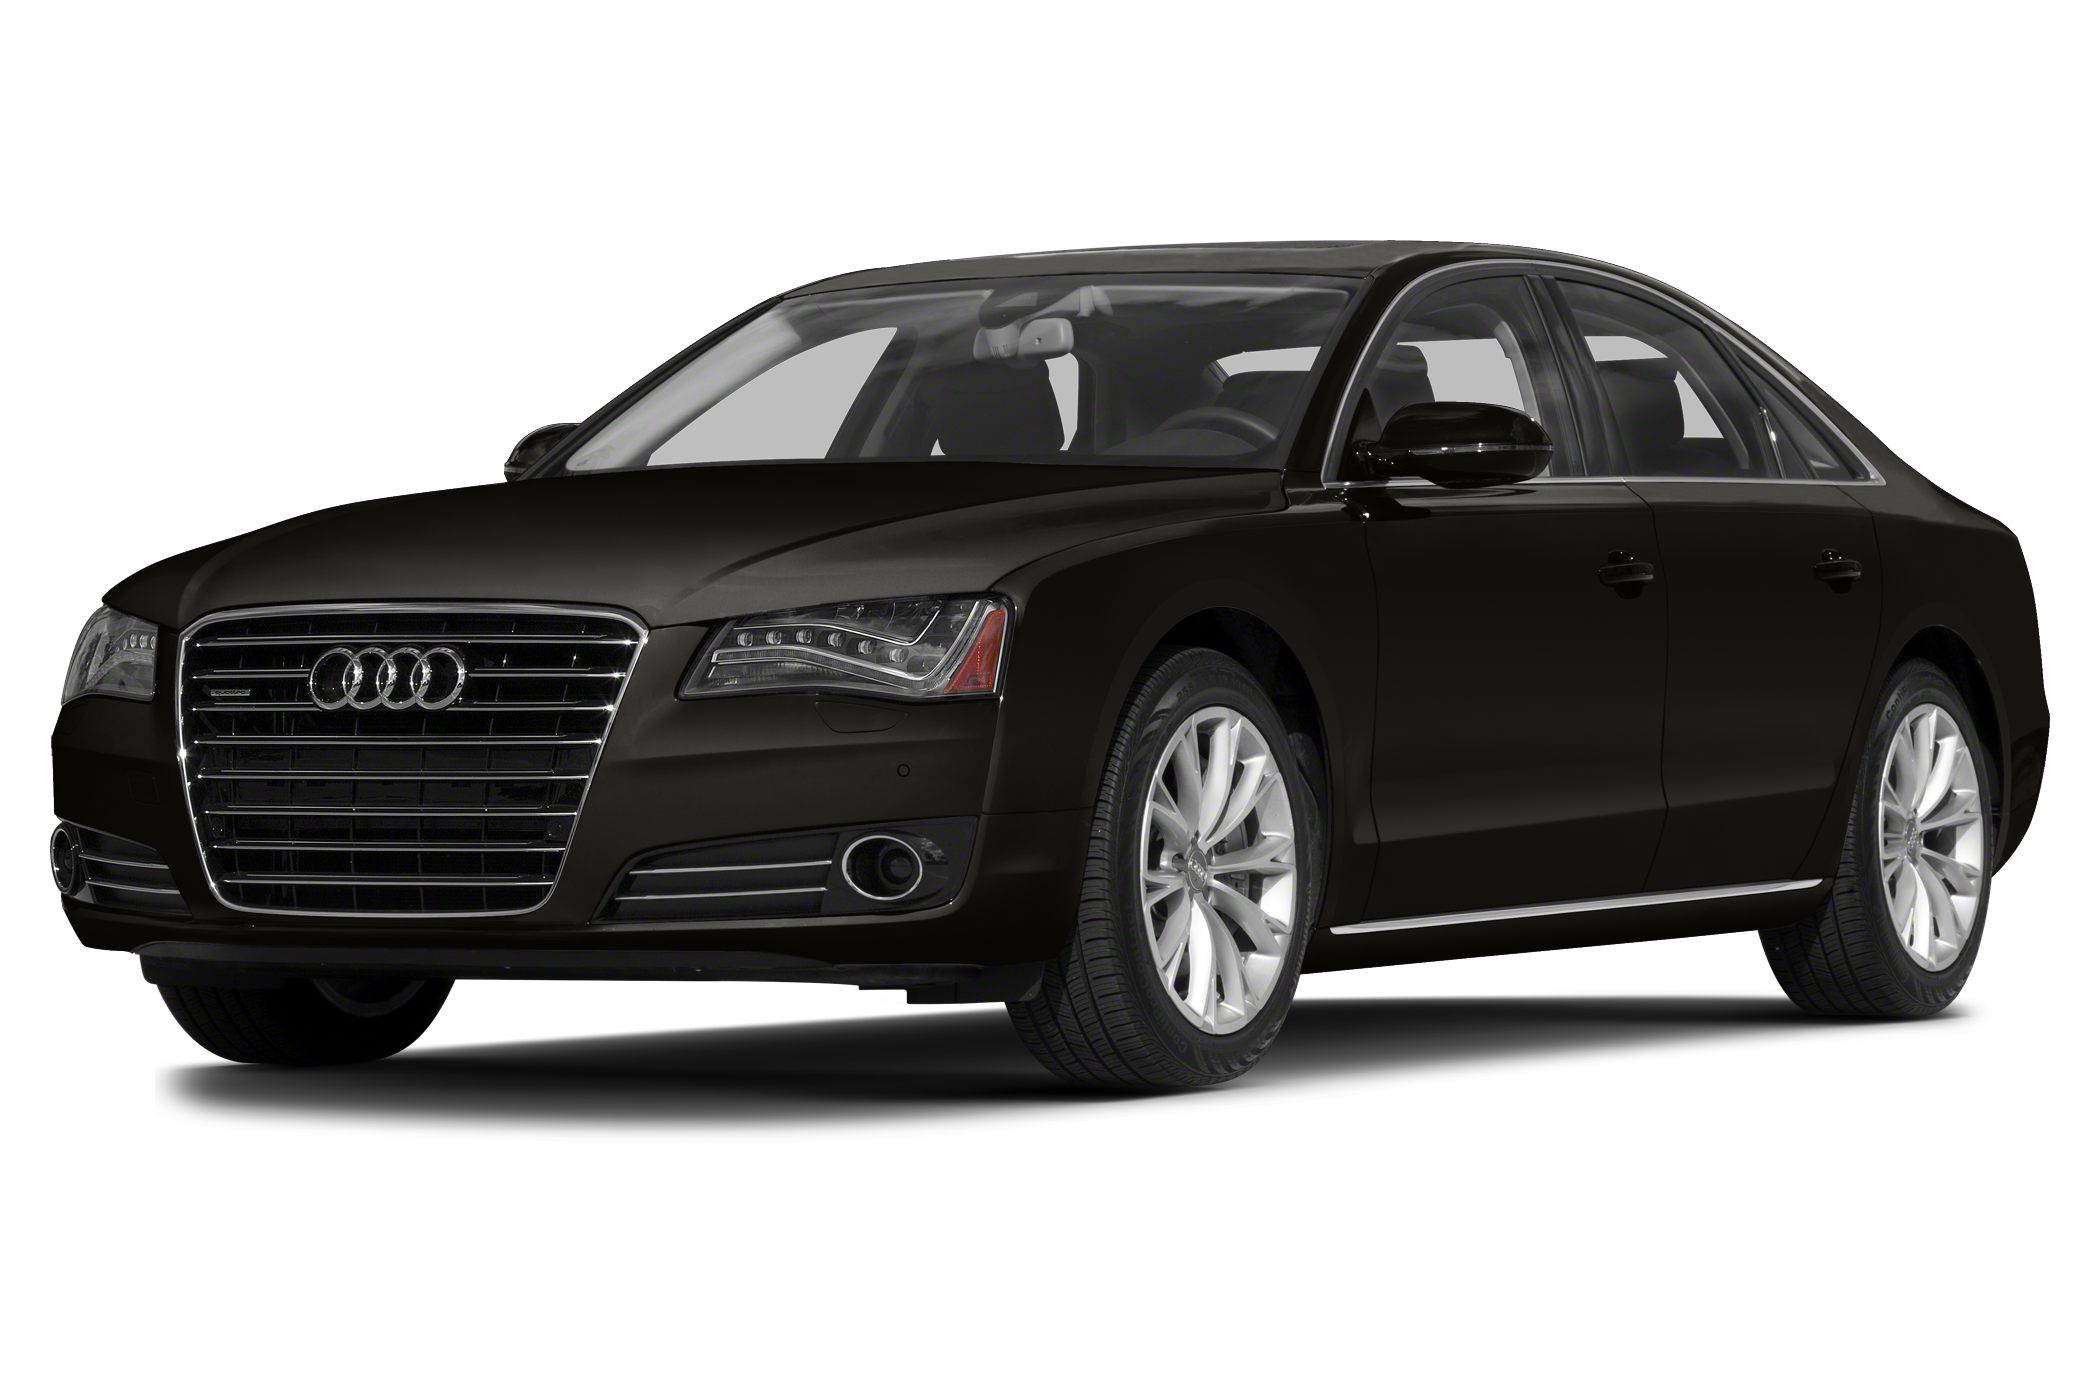 2014 Audi A8 3.0T Sedan for sale in Lake Worth for $50,999 with 8,452 miles